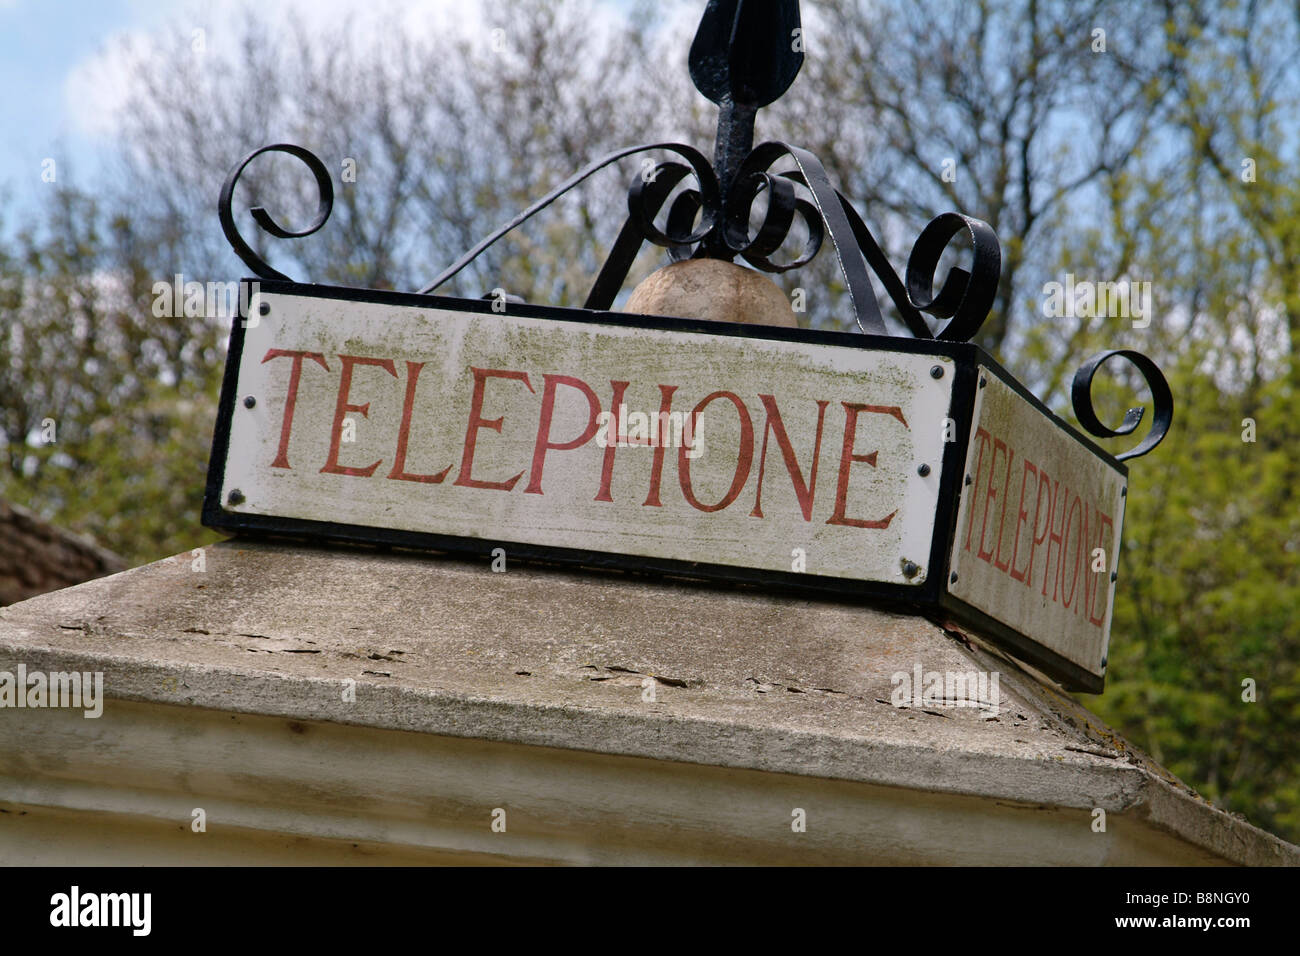 Roof detail of a late 1920's K1 telephone kiosk - the first English phone box. - Stock Image